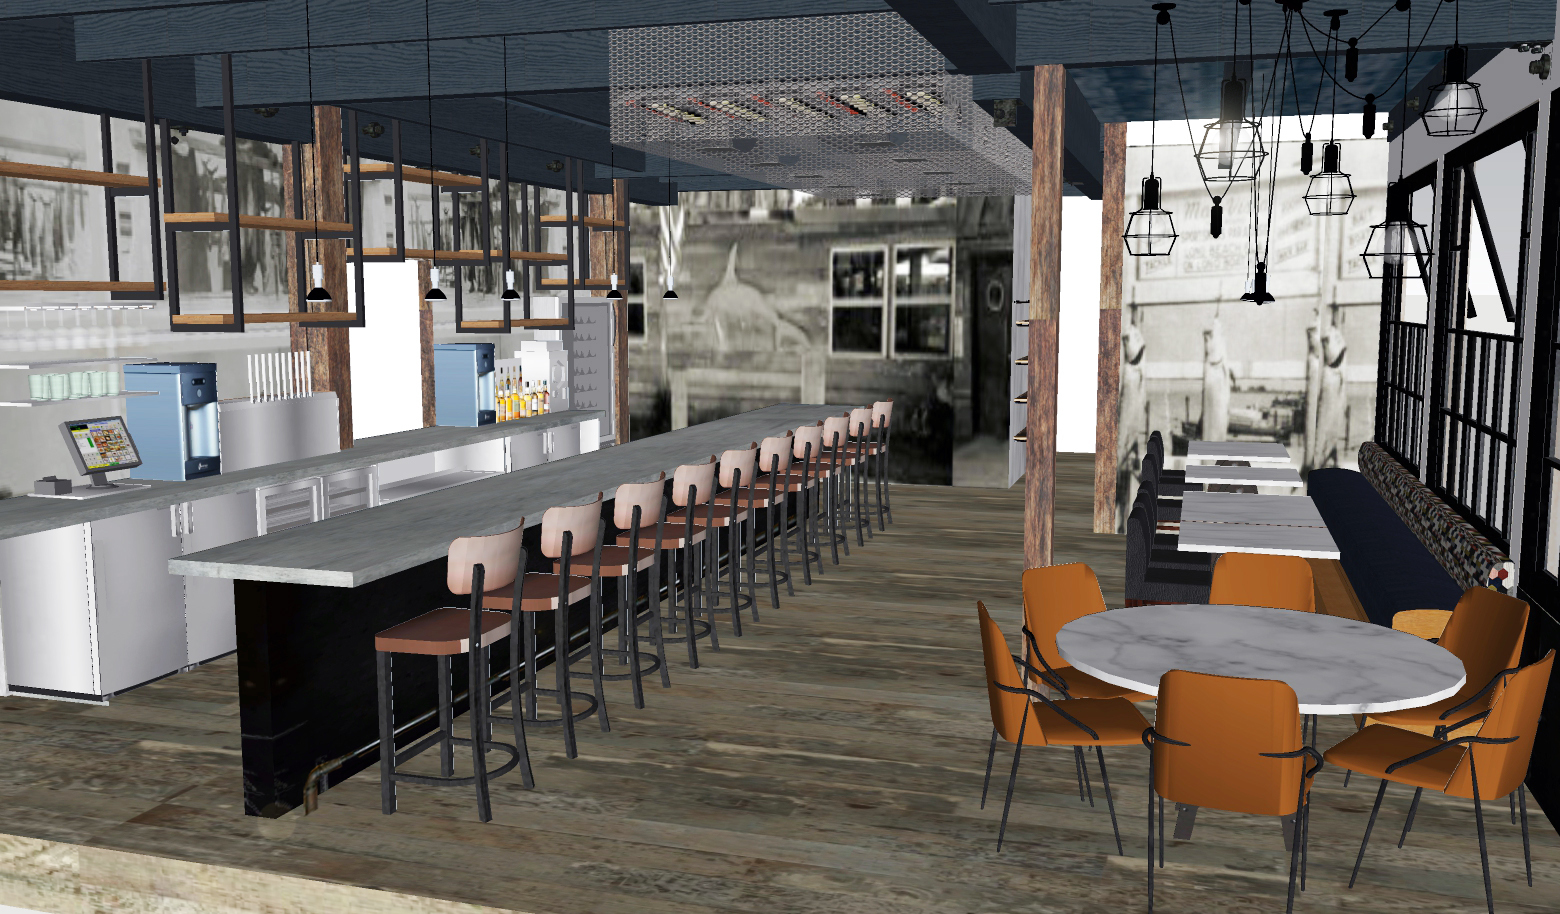 Ed Chiles Is Hoping The Renovation Of Mar Vista Dockside Restaurant Pub His Last Major Redevelopment Project